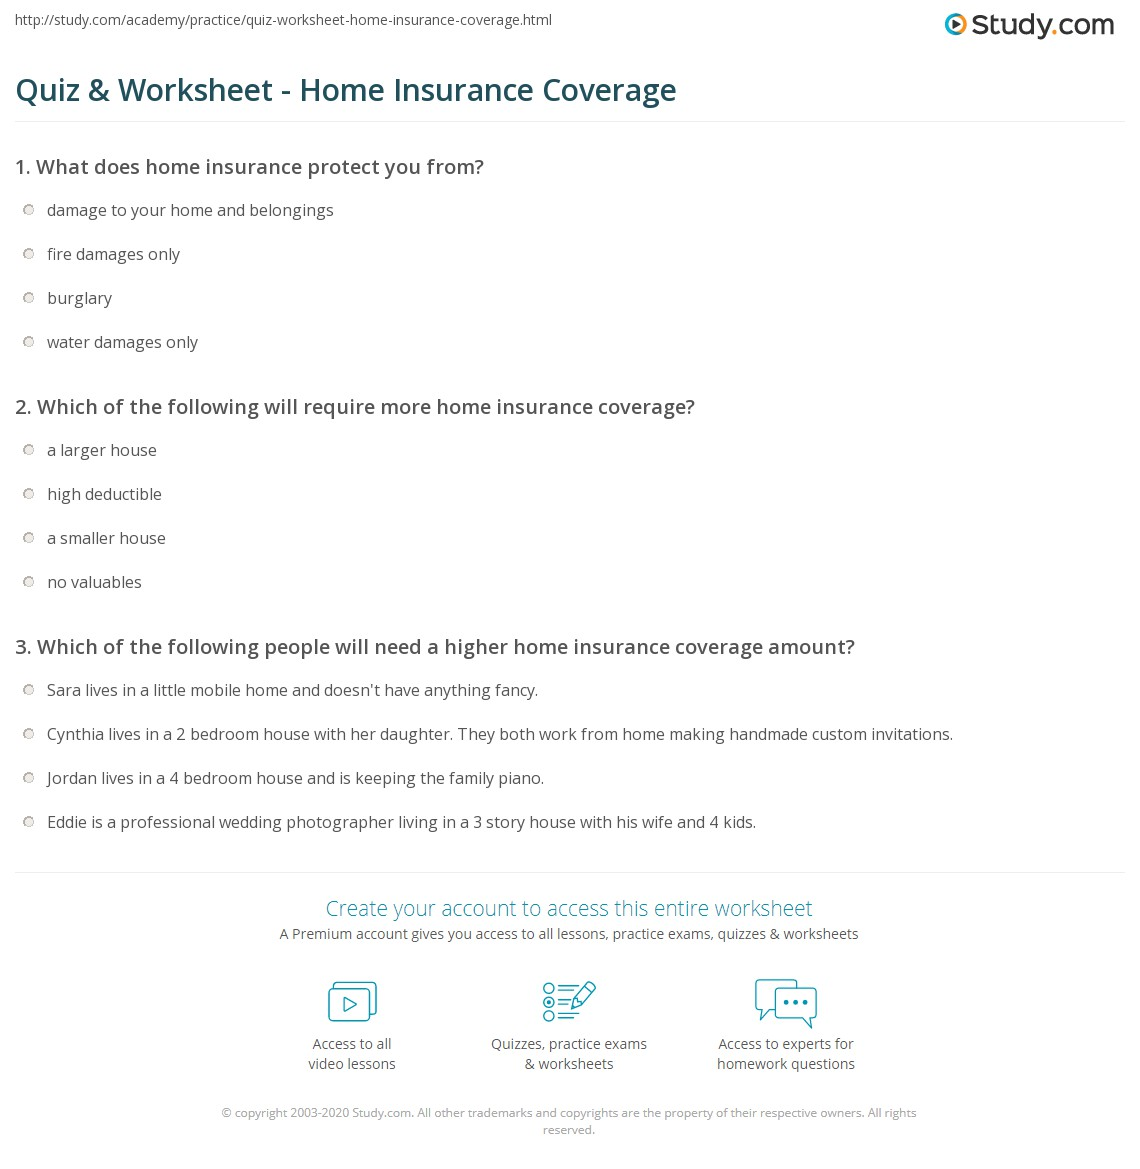 Quiz Worksheet Home Insurance Coverage